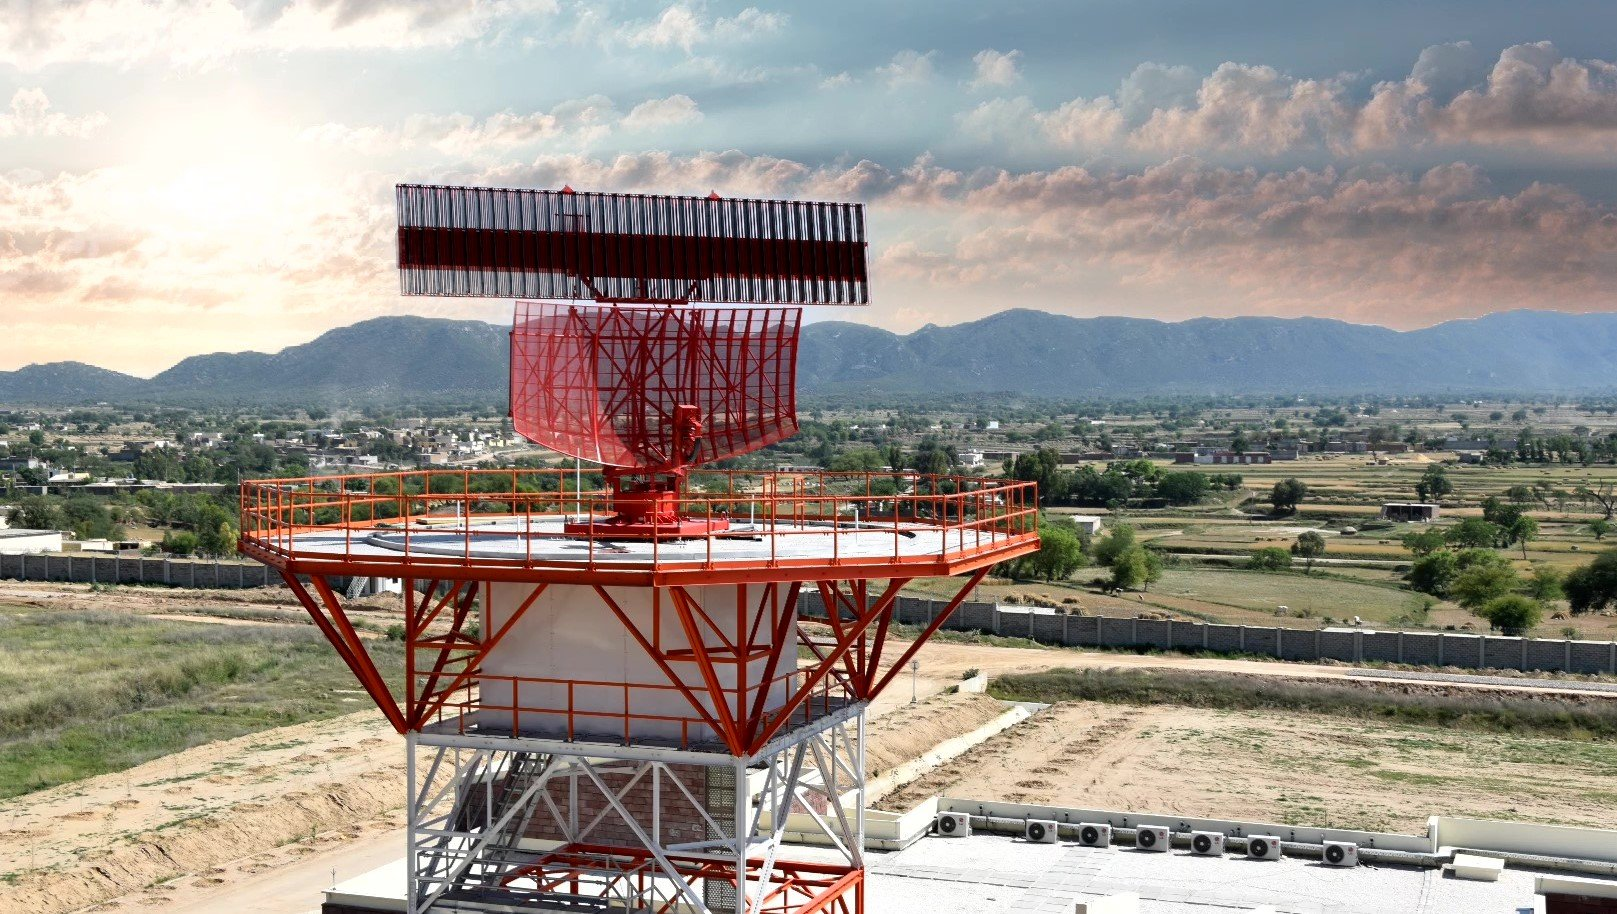 ELDIS trained Chinese radar operators due to the pandemic by on-line way